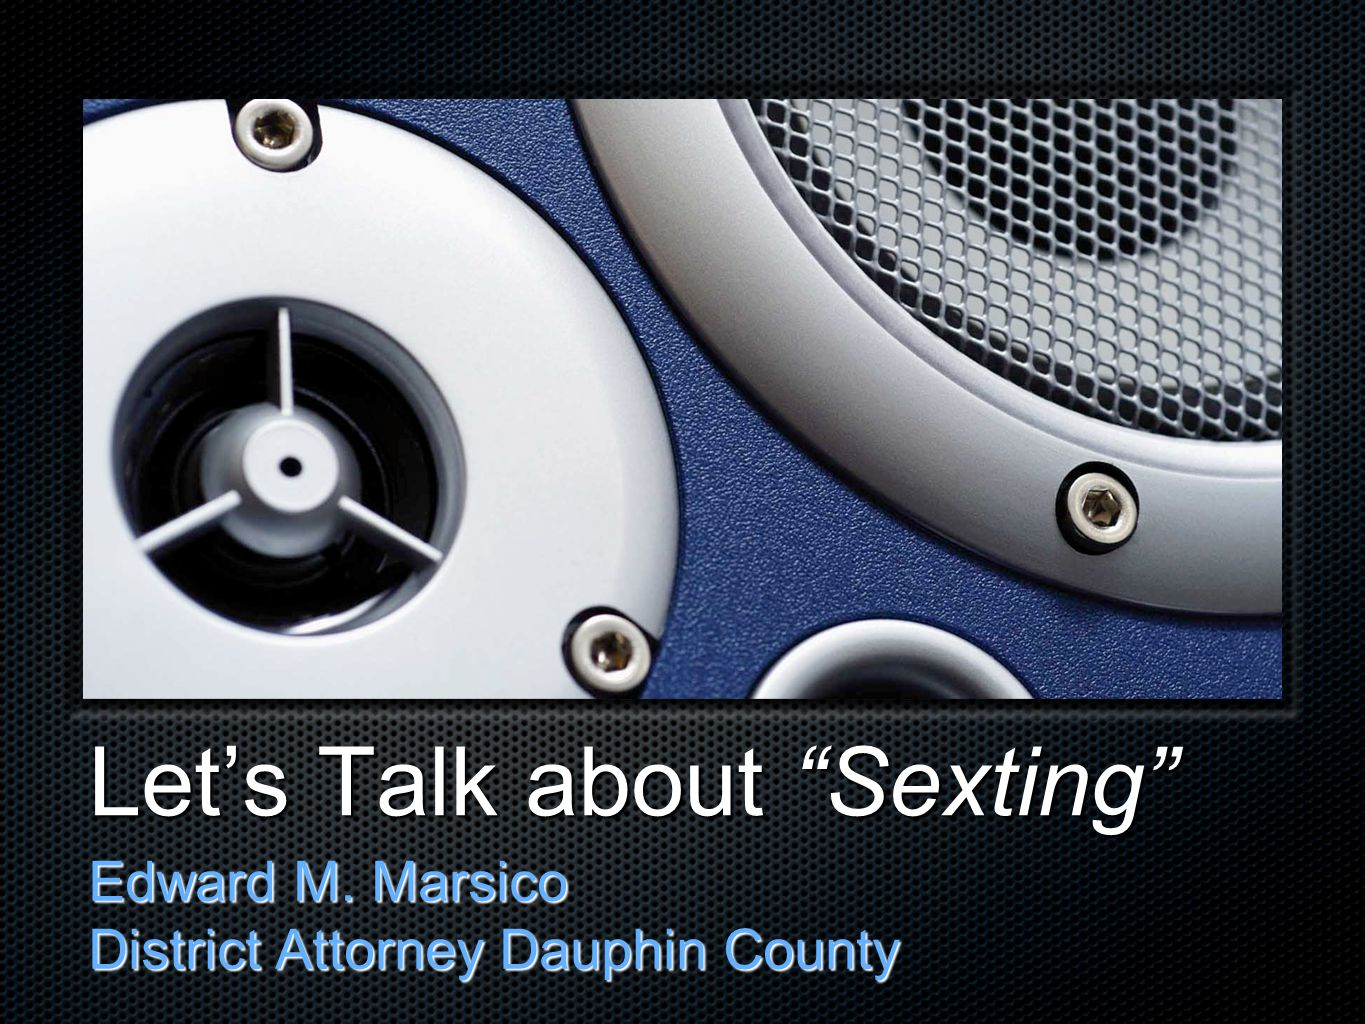 Let's Talk about Sexting